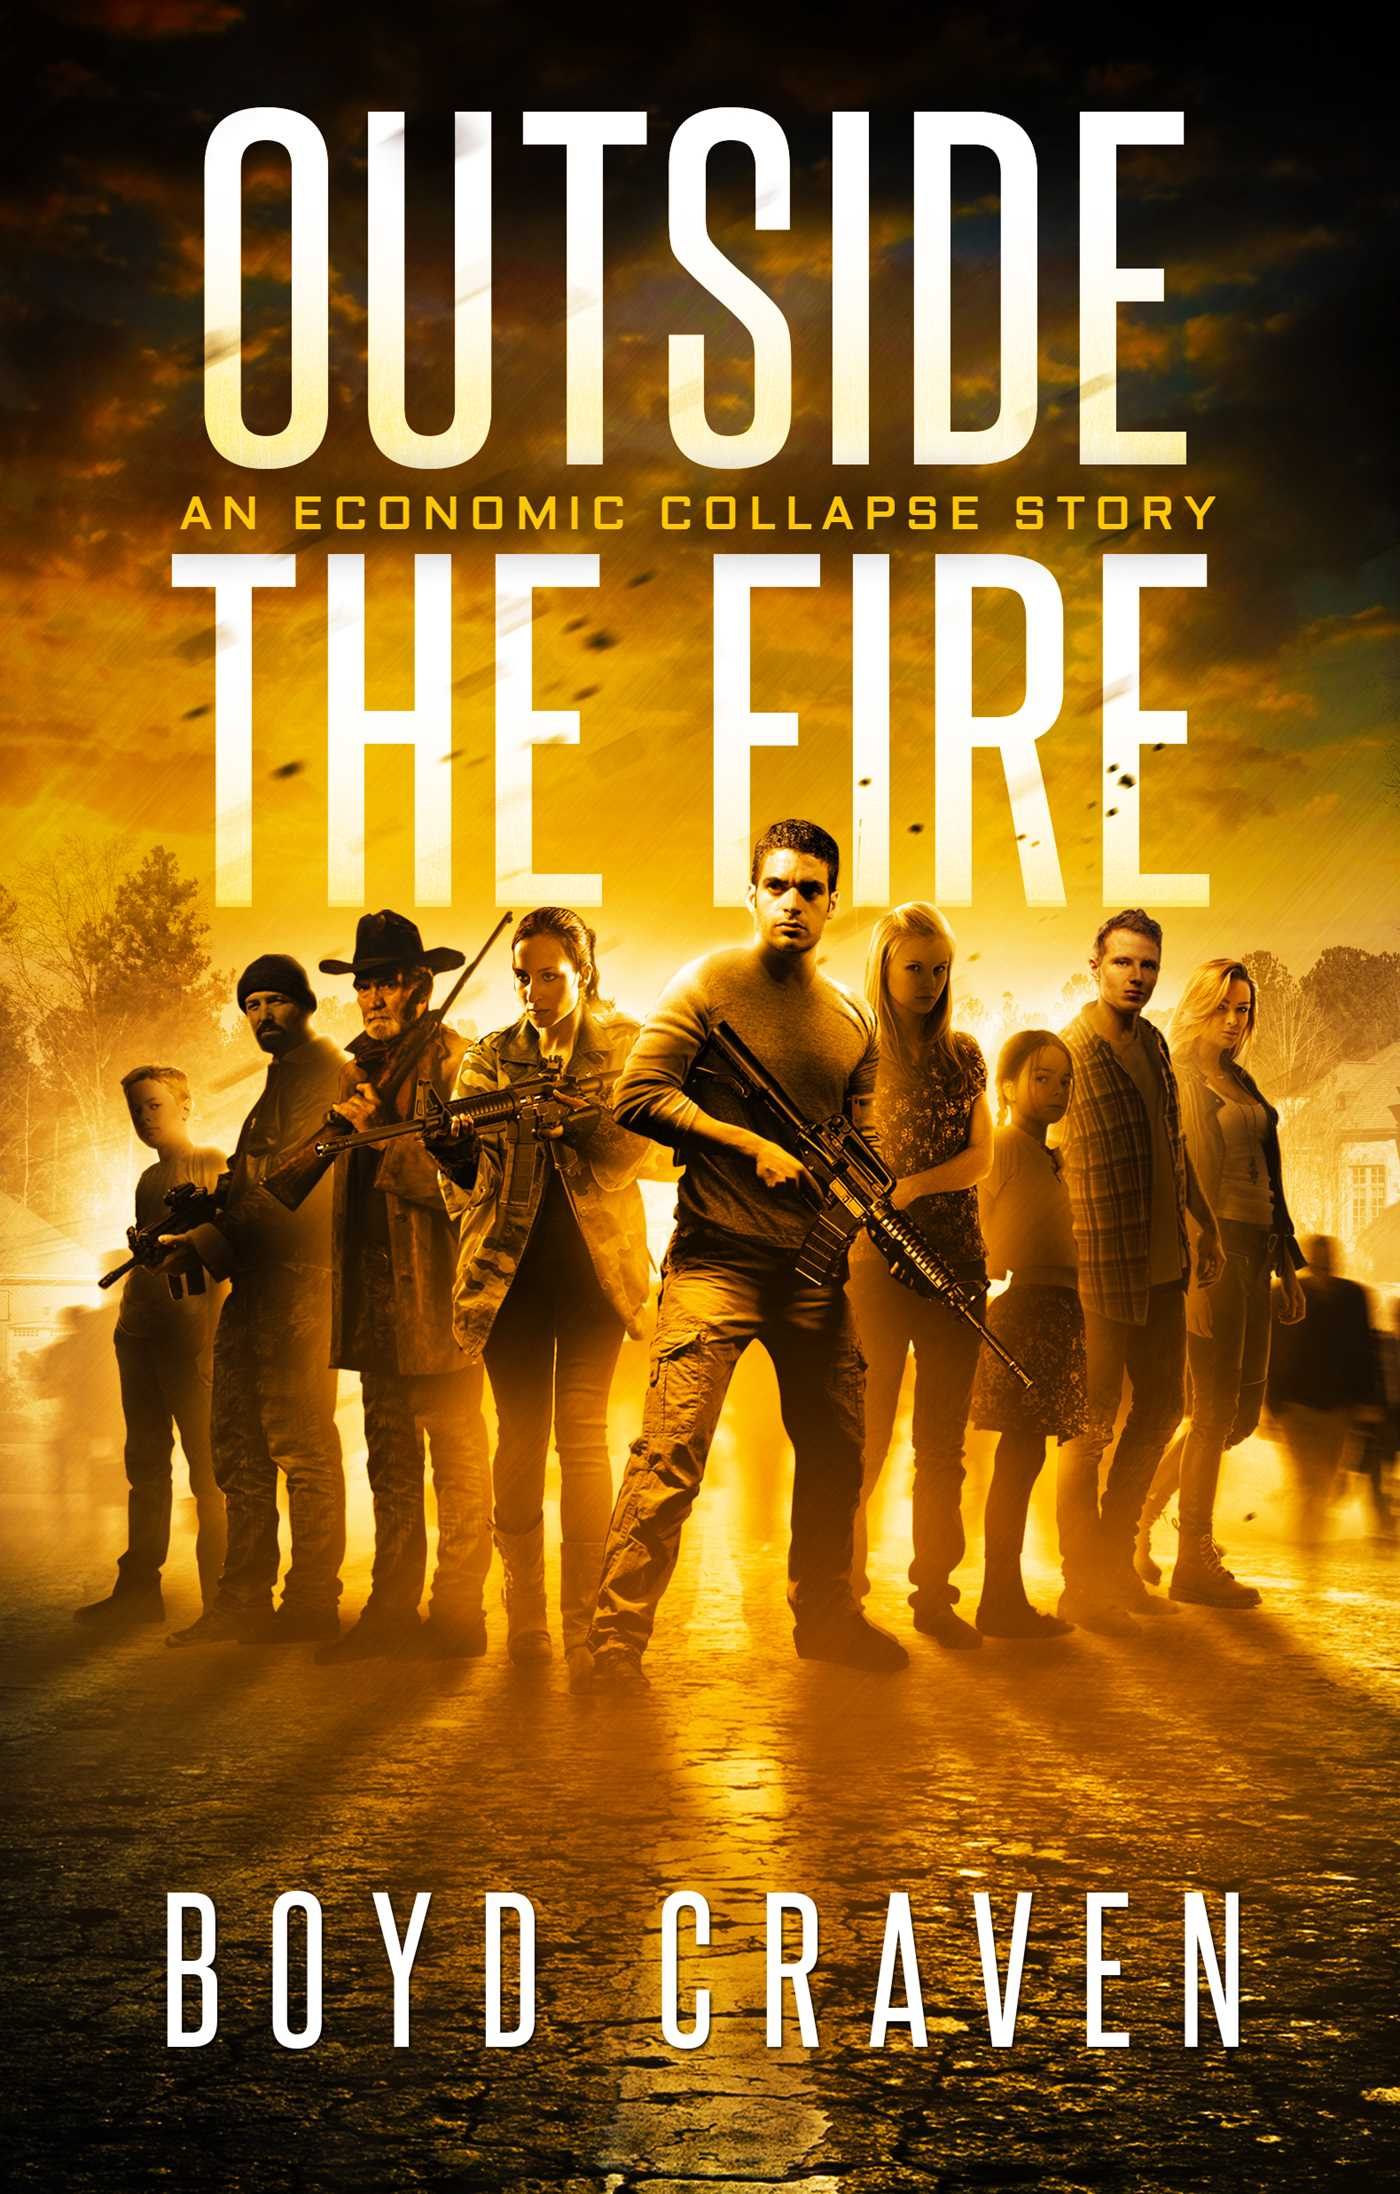 Outside the fire 9781682617663 hr